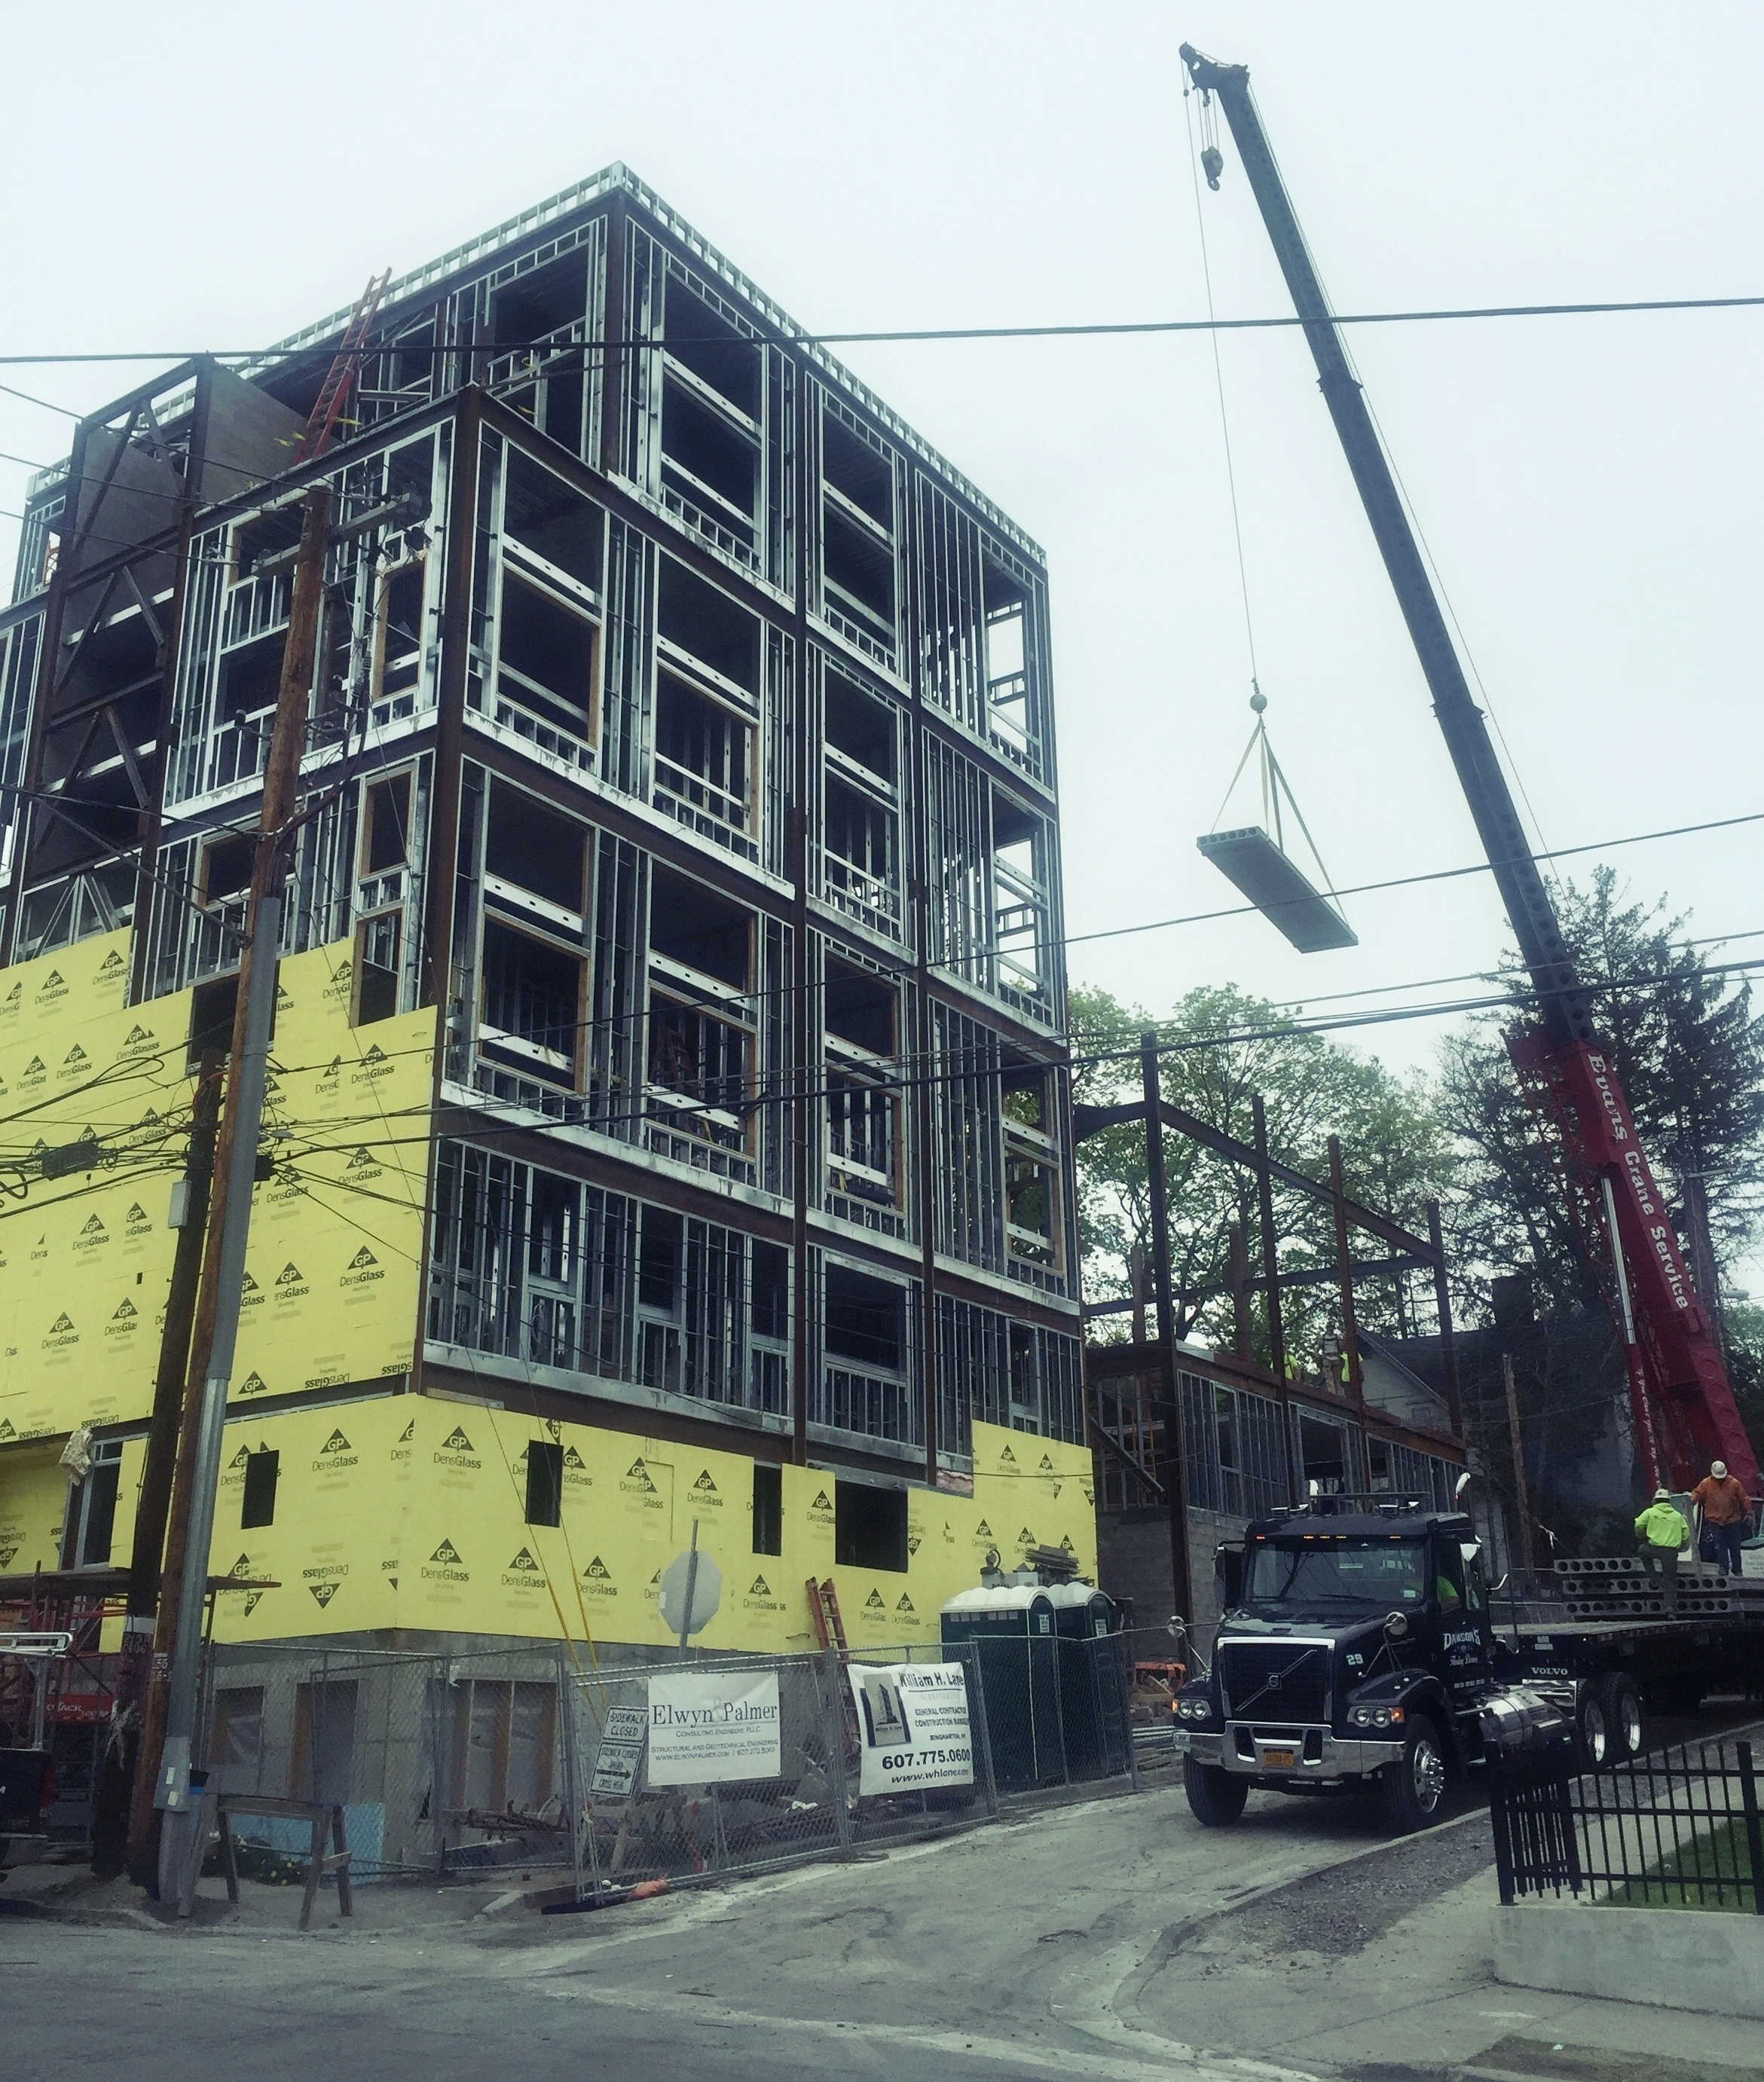 Sixth month of construction on the 201 College Ave site